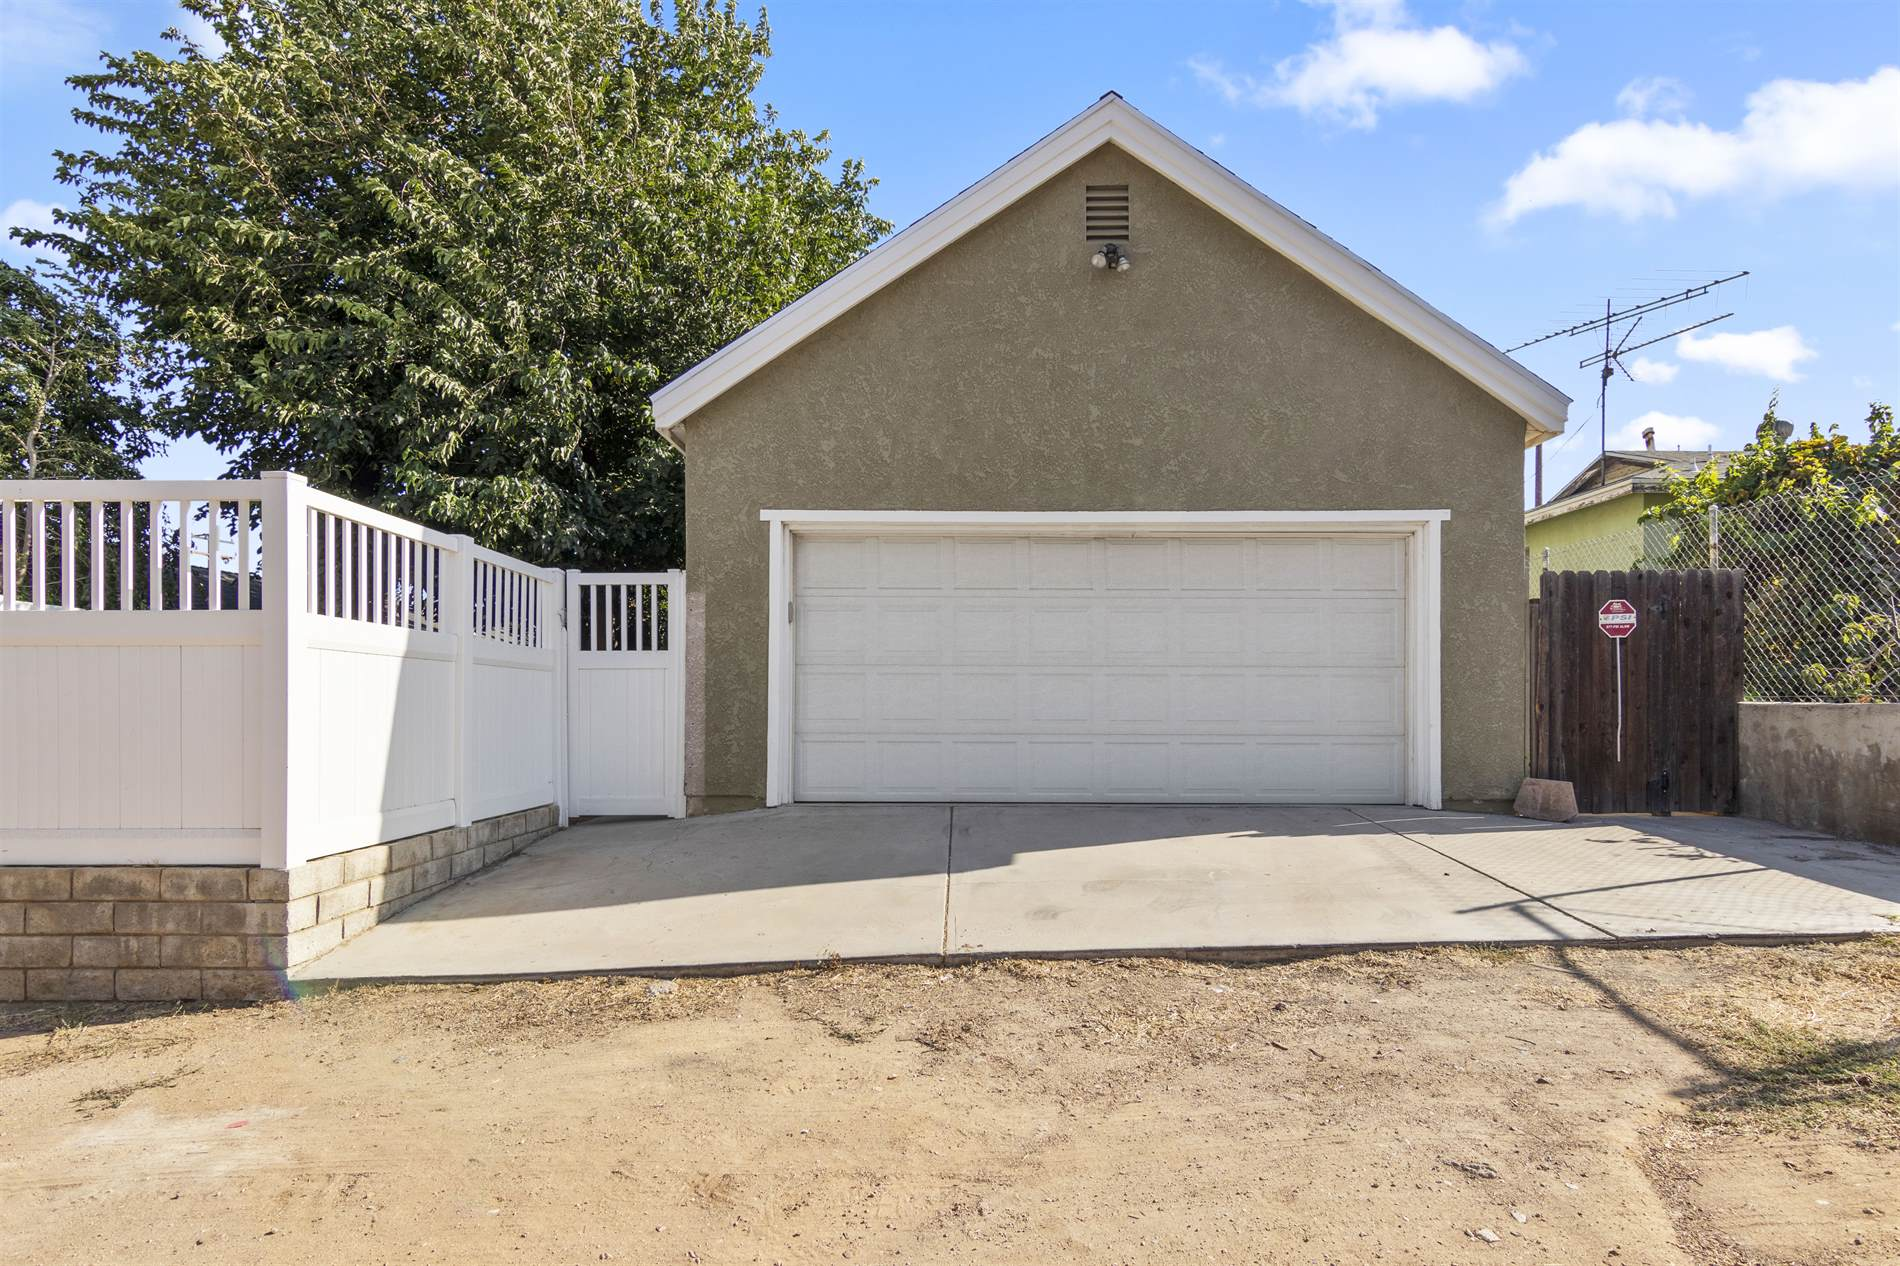 3807 Smith Ave, Acton, CA 93510